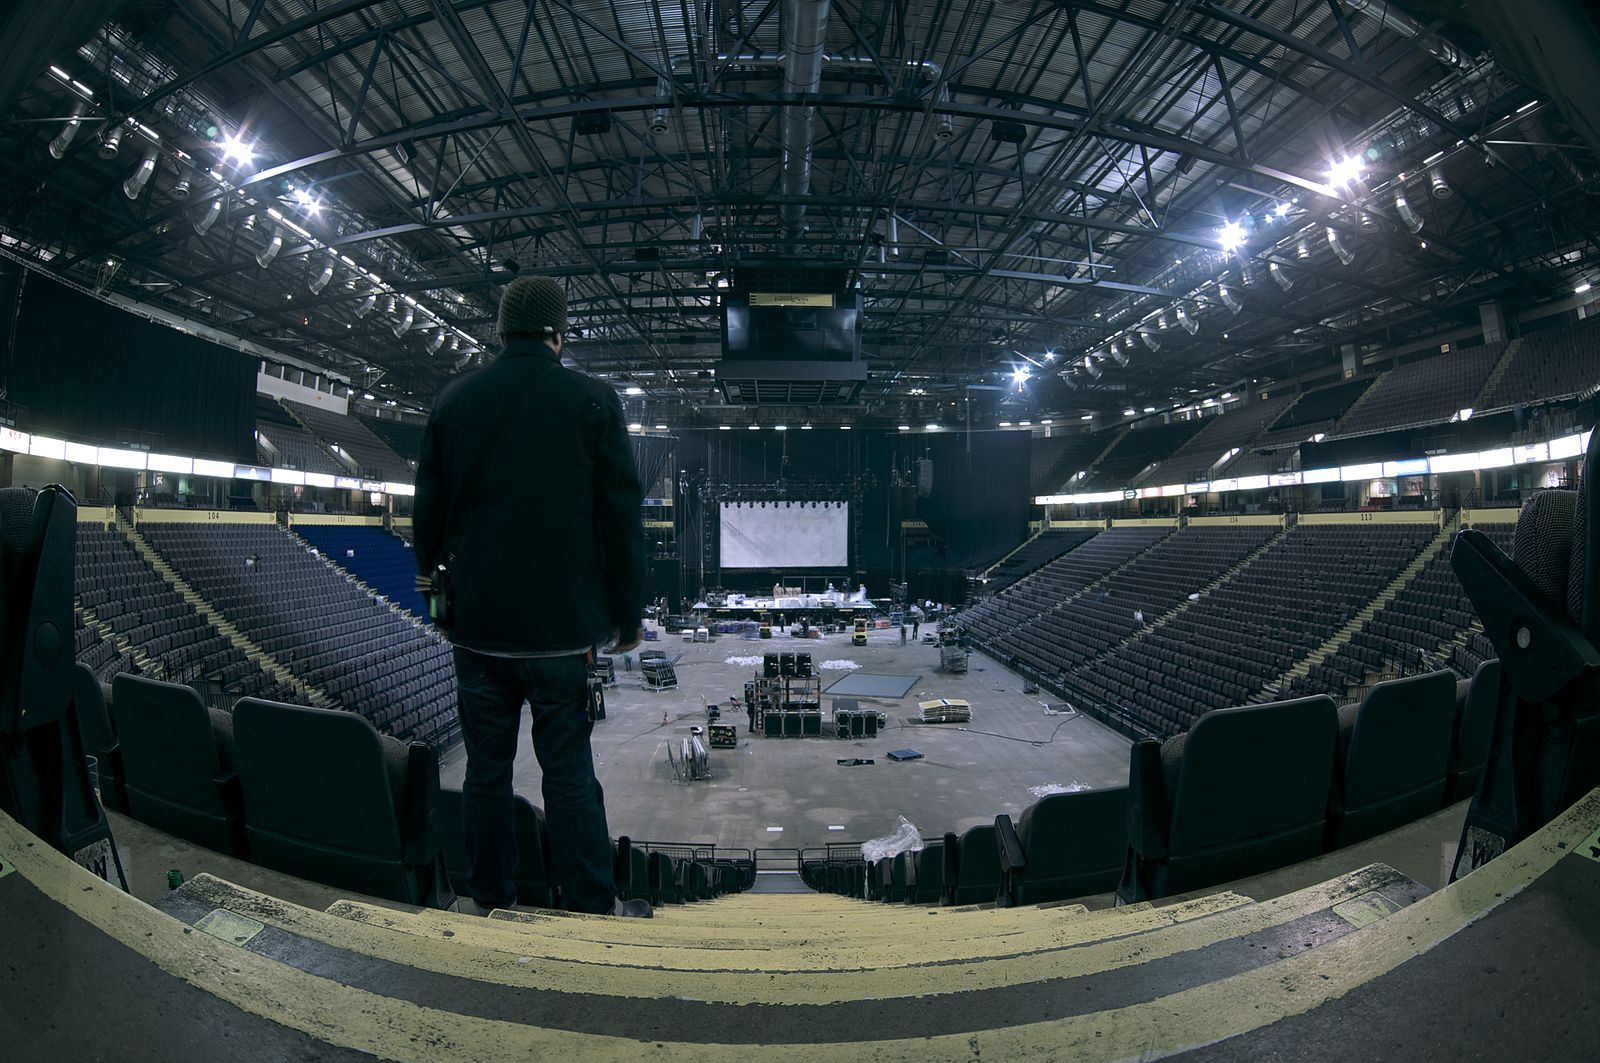 Manchester Arena